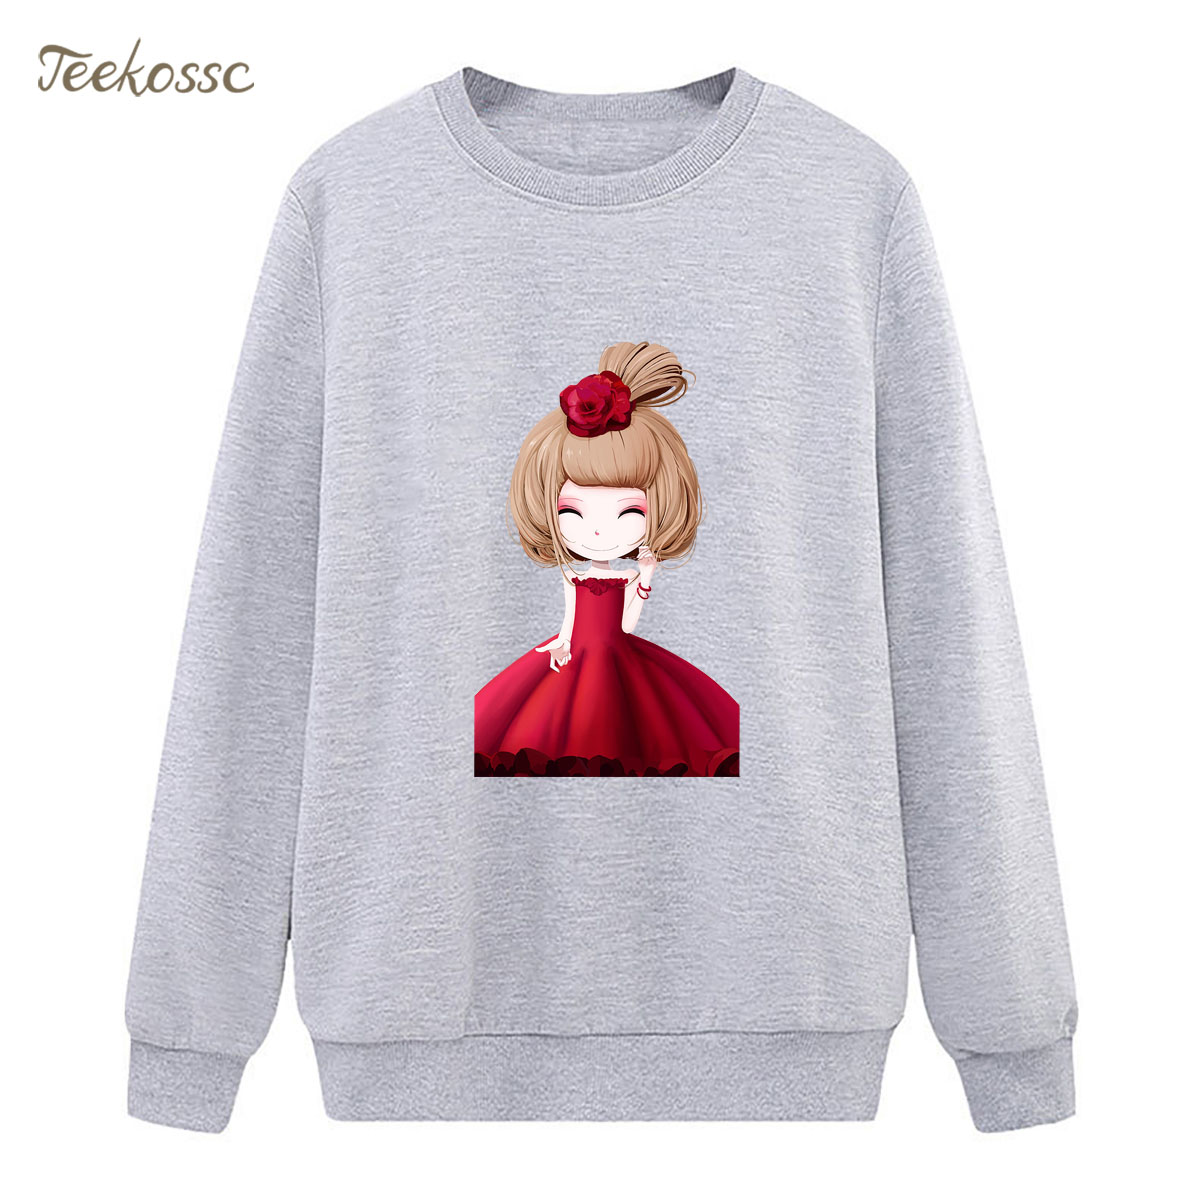 Red Skirt Girl Sweatshirt Gray Casual Hoodie 2018 New Brand Winter Autumn Women Lasdies Pullover Fleece Warm Loose Streetwear